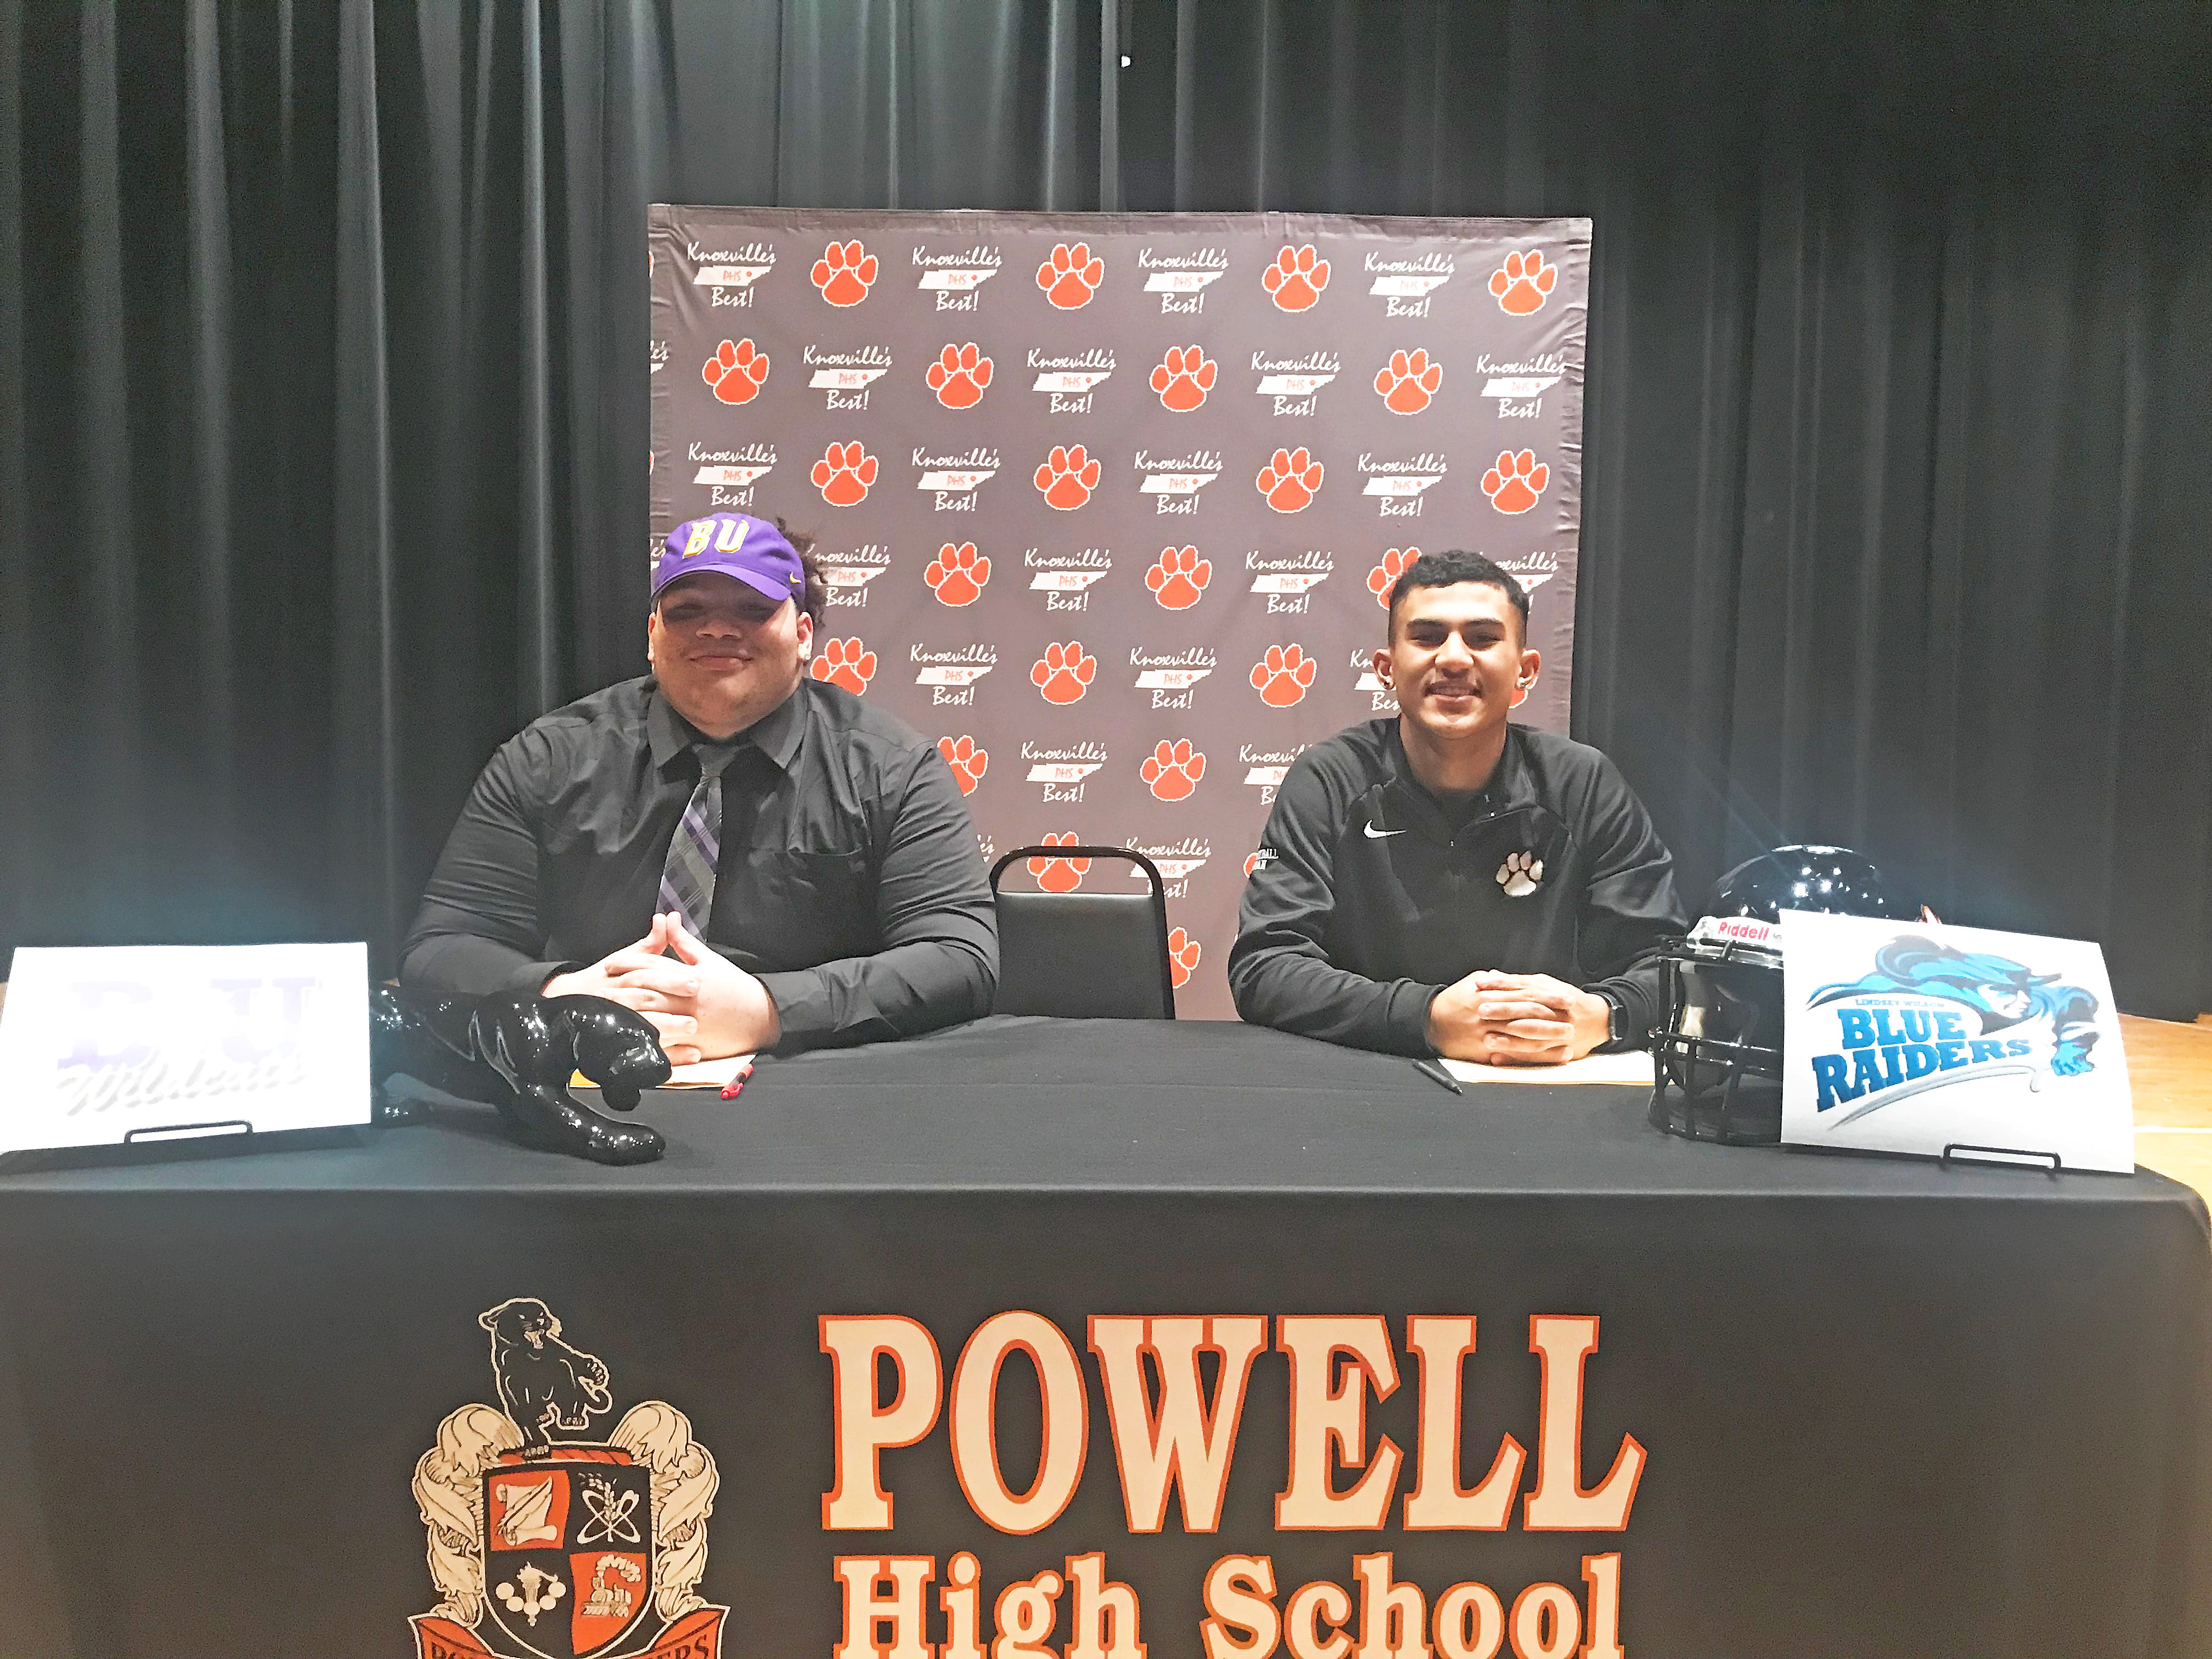 Powell High football players Alvin Stacy, left, and Riley Bryant signed college letters to Bethel University and Lindsey Wilson College, respectively. The event took place in the Powell High auditorium on National Signing Day, Wednesday, February 6, 2019.